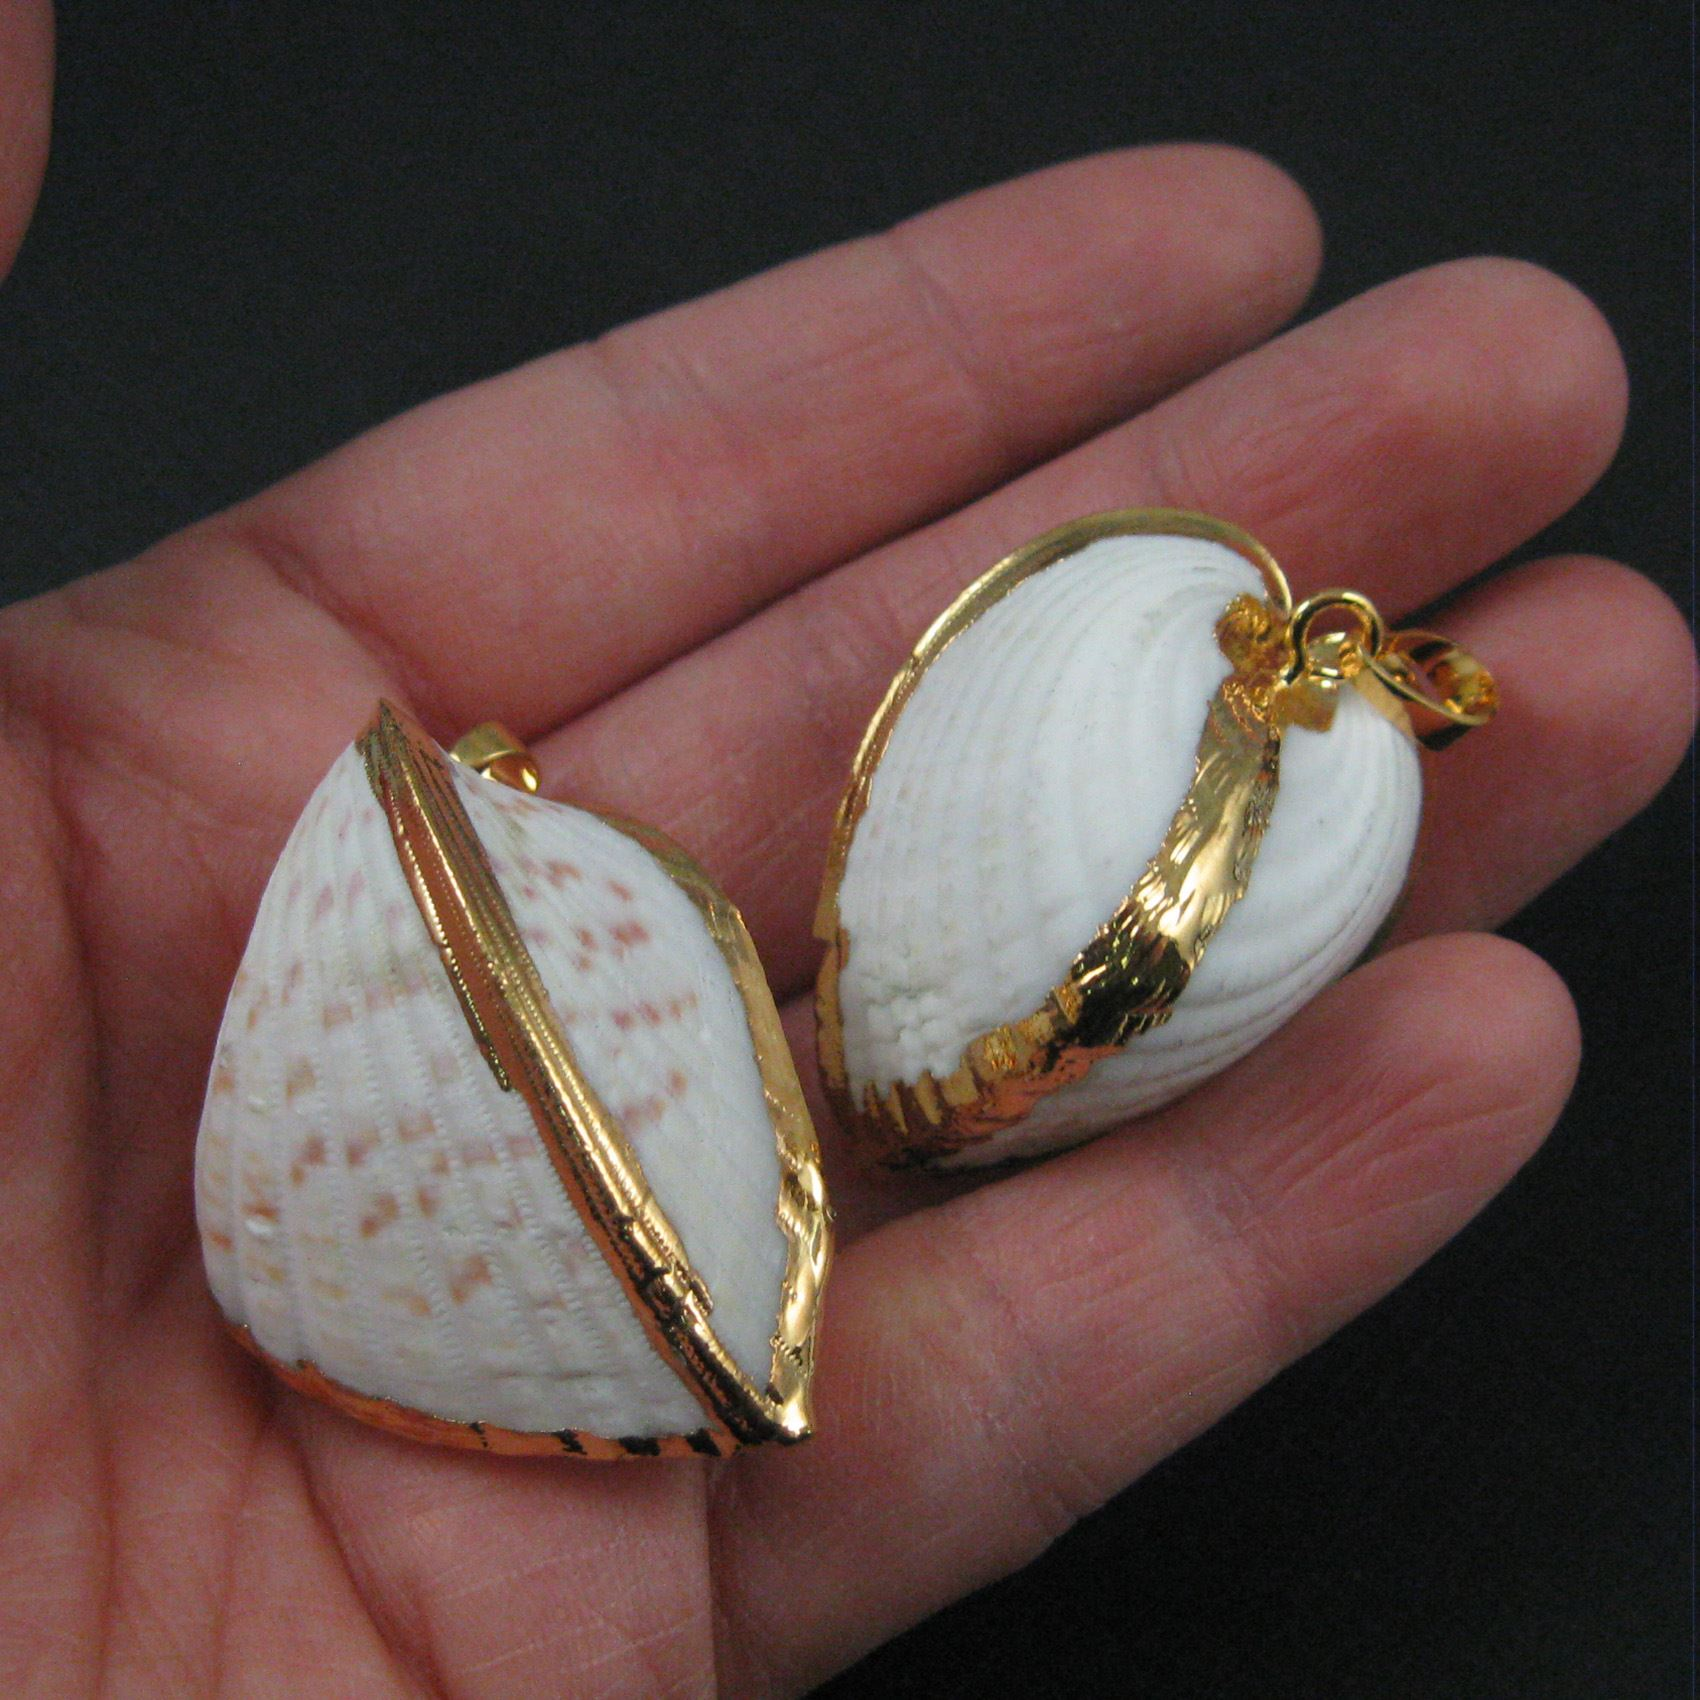 Genuine Shell Pendant, Coquina Gold Wrapped Shell Pendant,Natural Shaded Closed Coquina Shell with Gold Wrapping